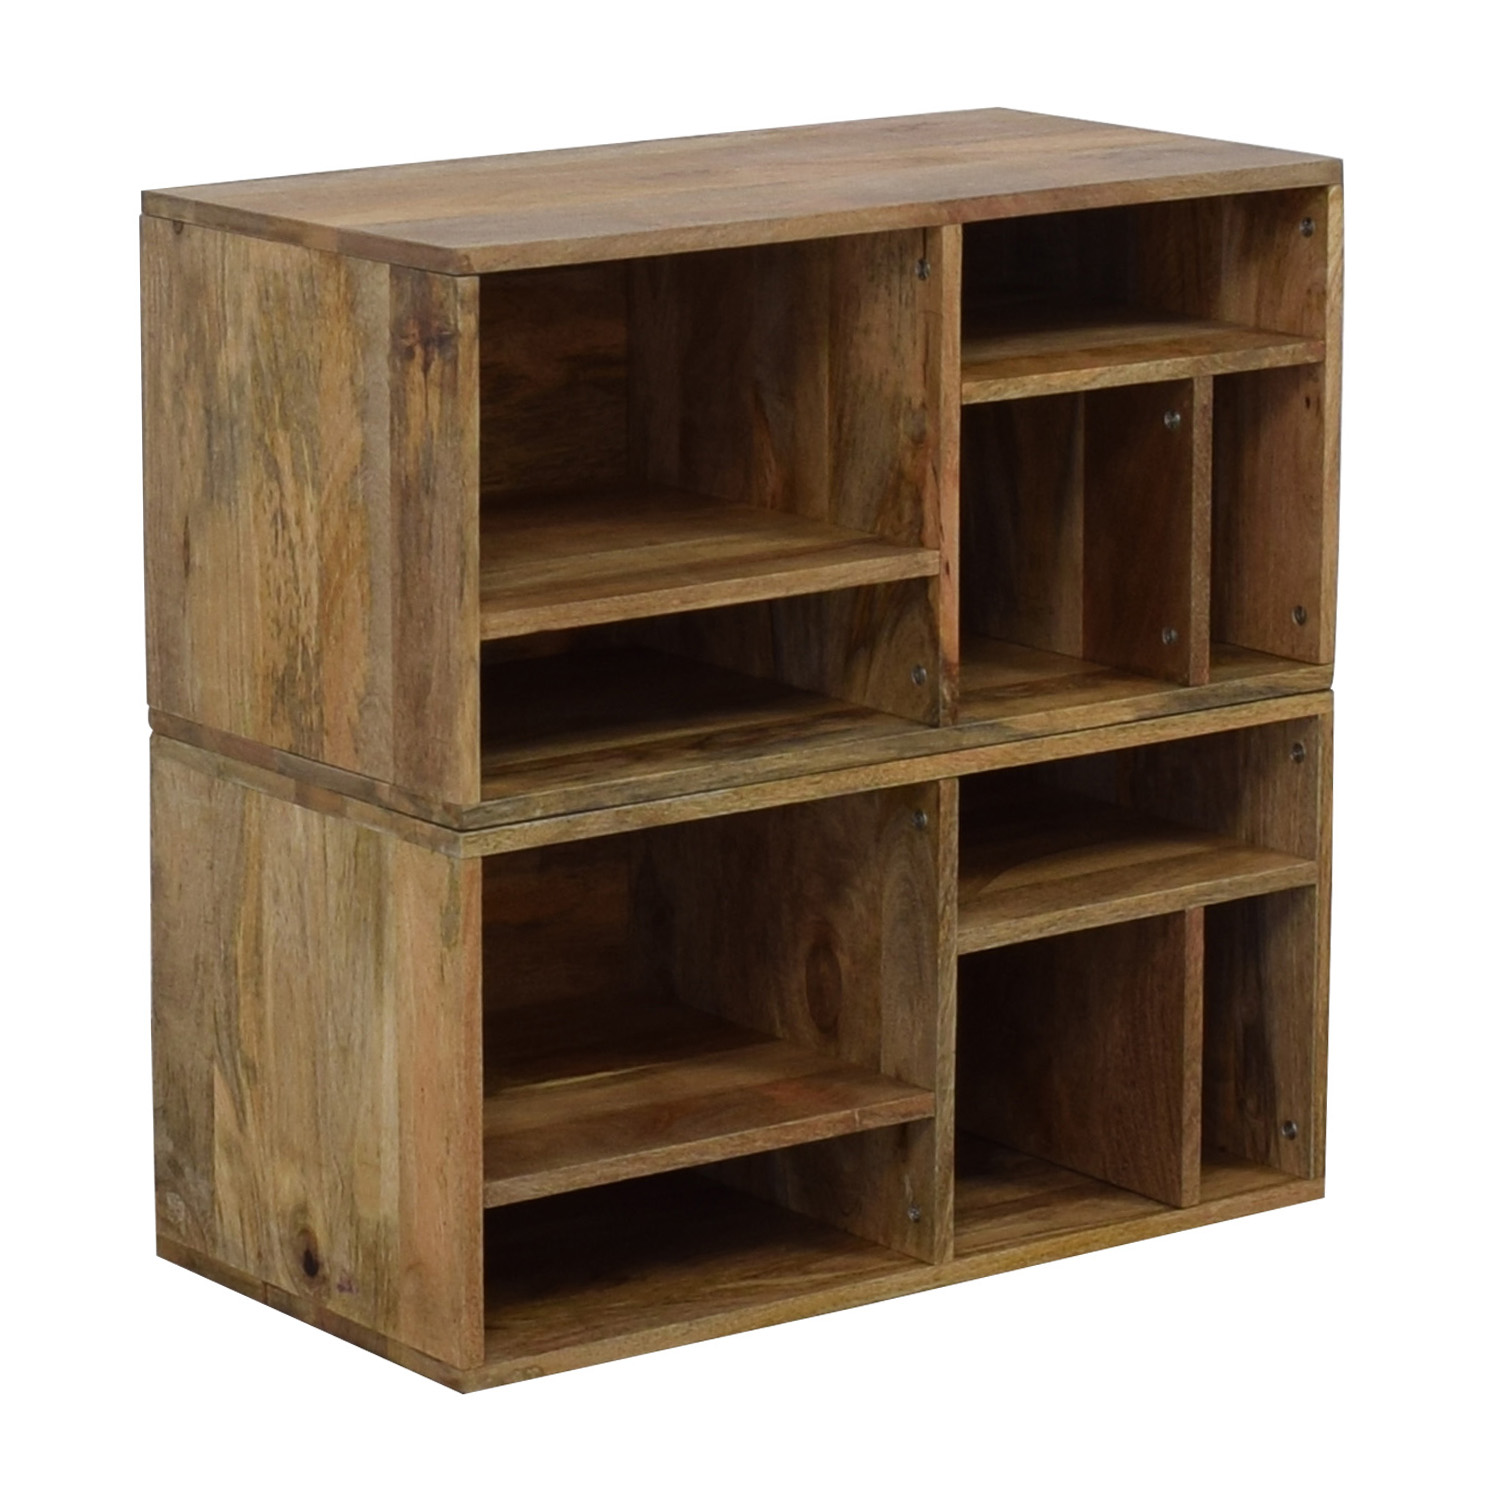 buy Urban Outfitters Raw Wood Bookshelves Urban Outfitters Storage